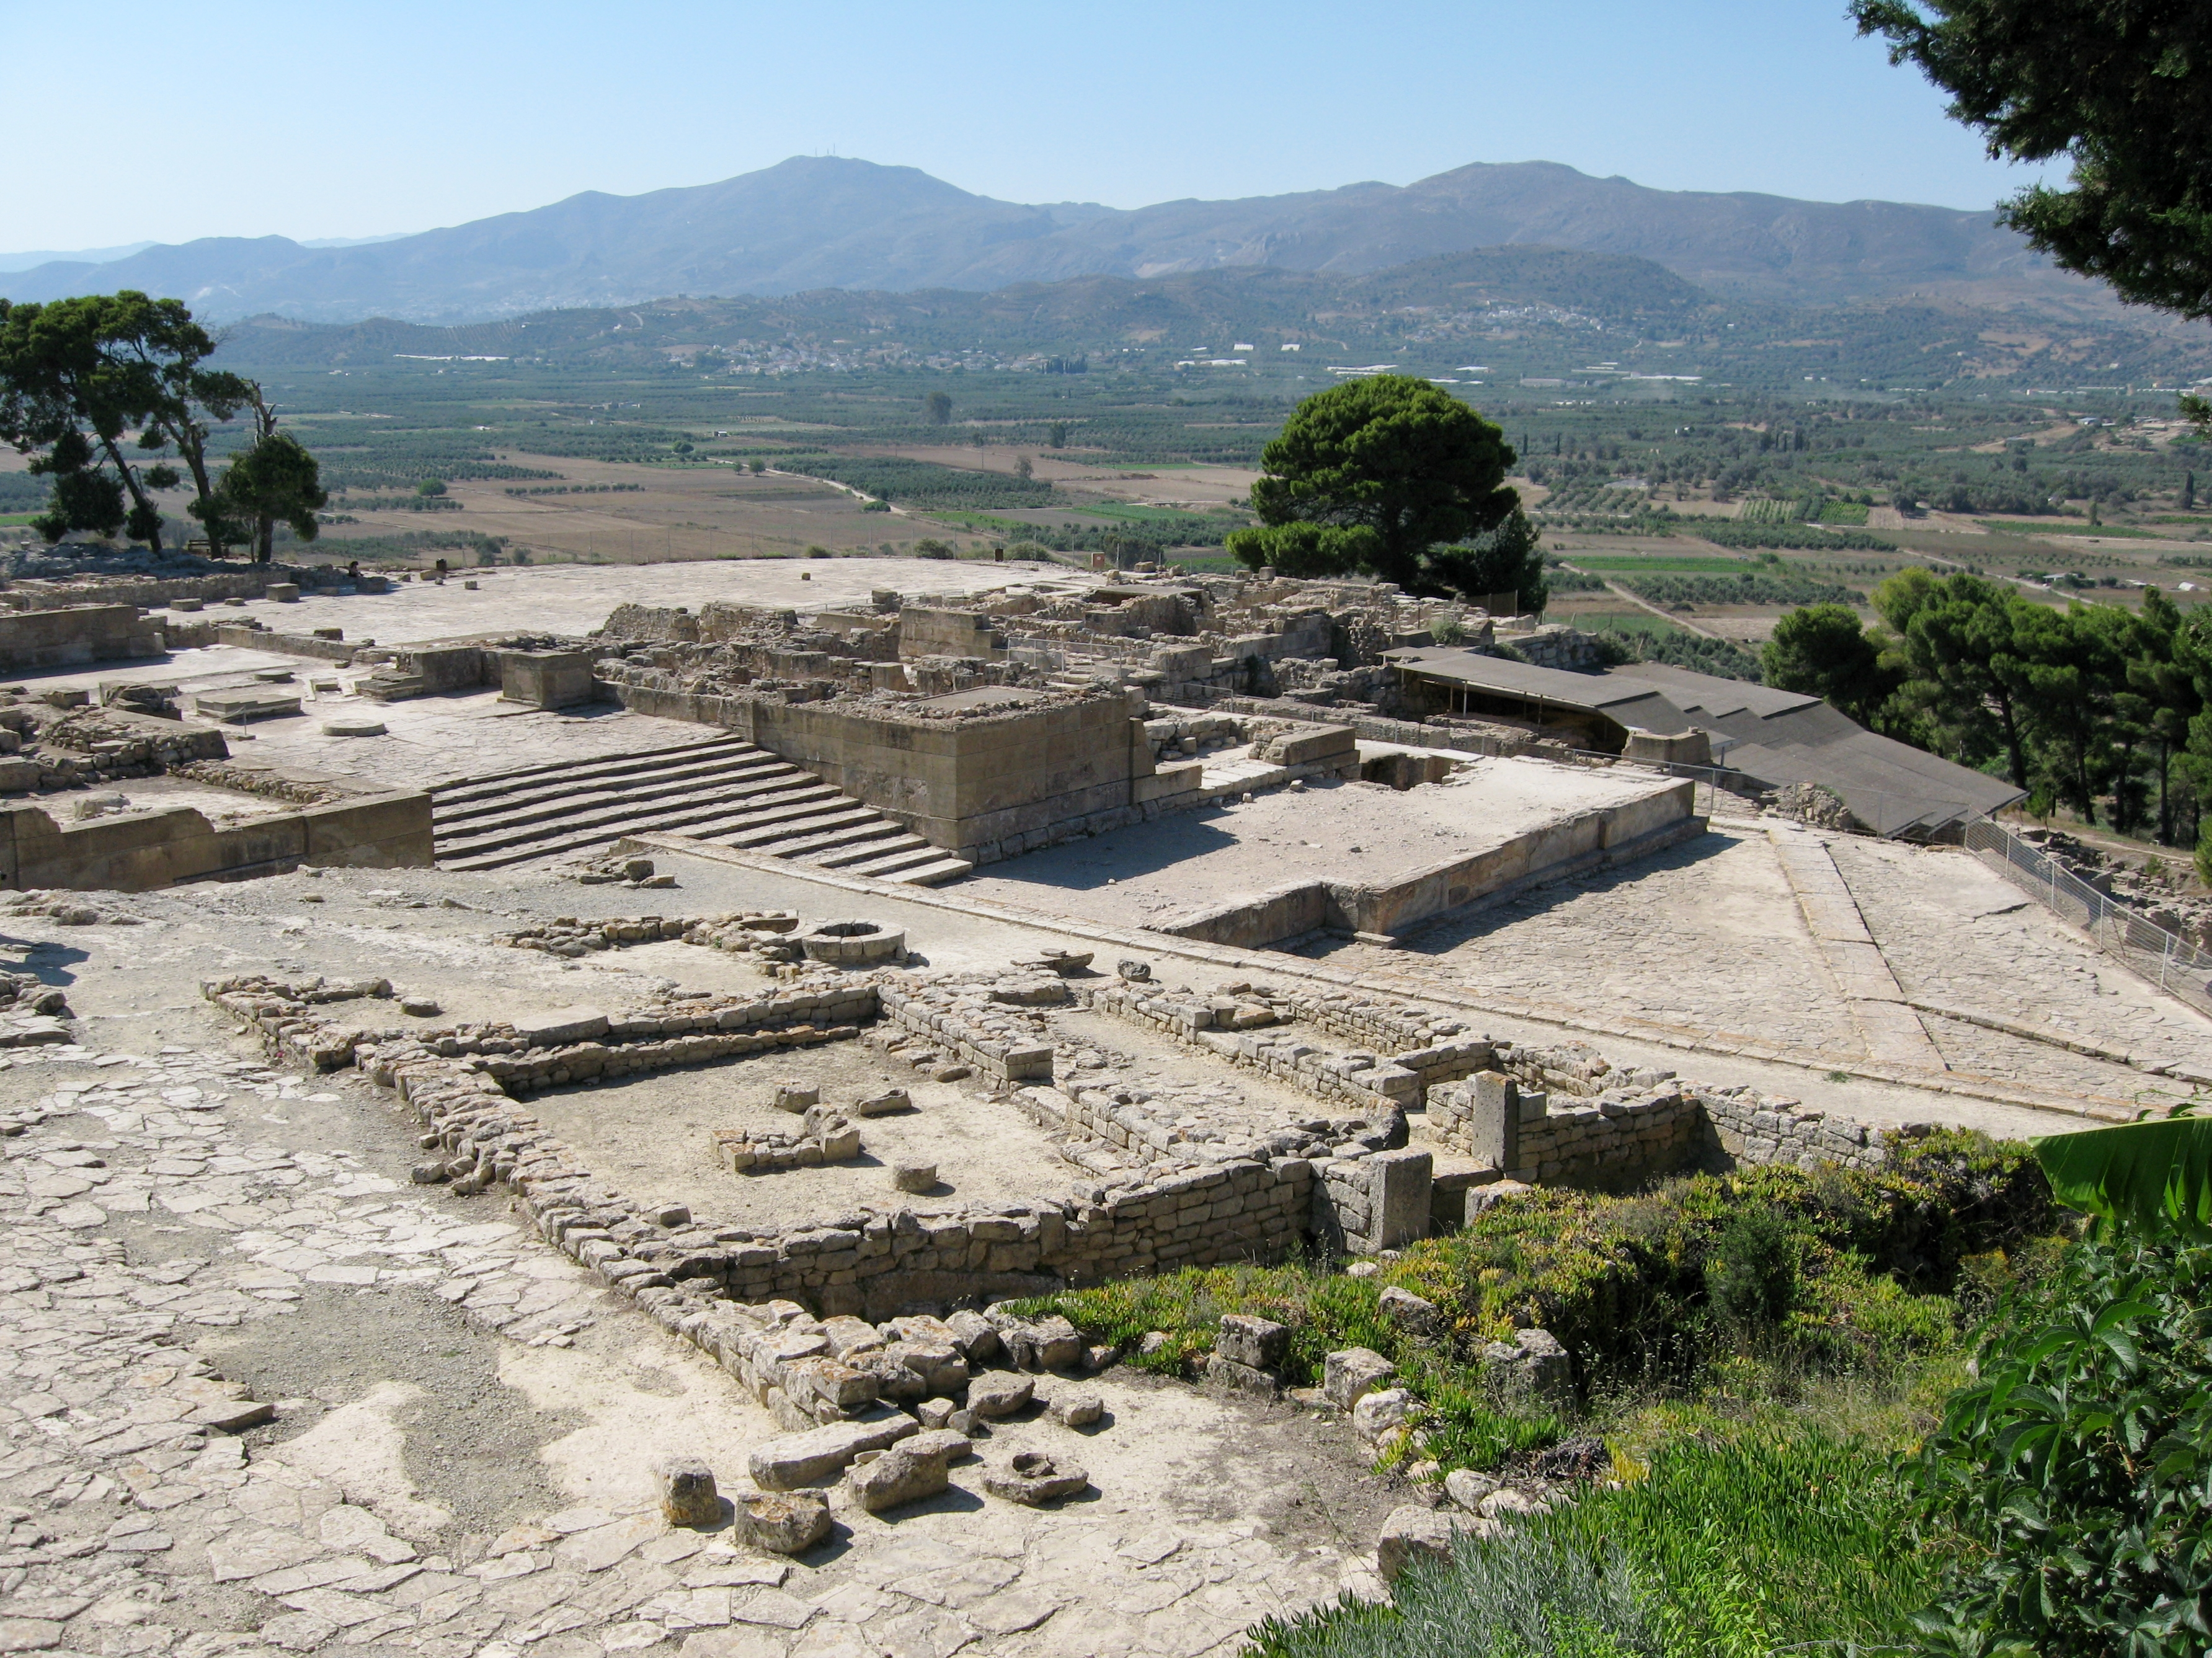 minoan civilization overview The minoan civilization was named after the mythical king minos, because the first excavator, sir arthur evans , mistook the many rooms and corridors of the administrative palace of knossos to be the labyrinth in which minos kept the minotaur.